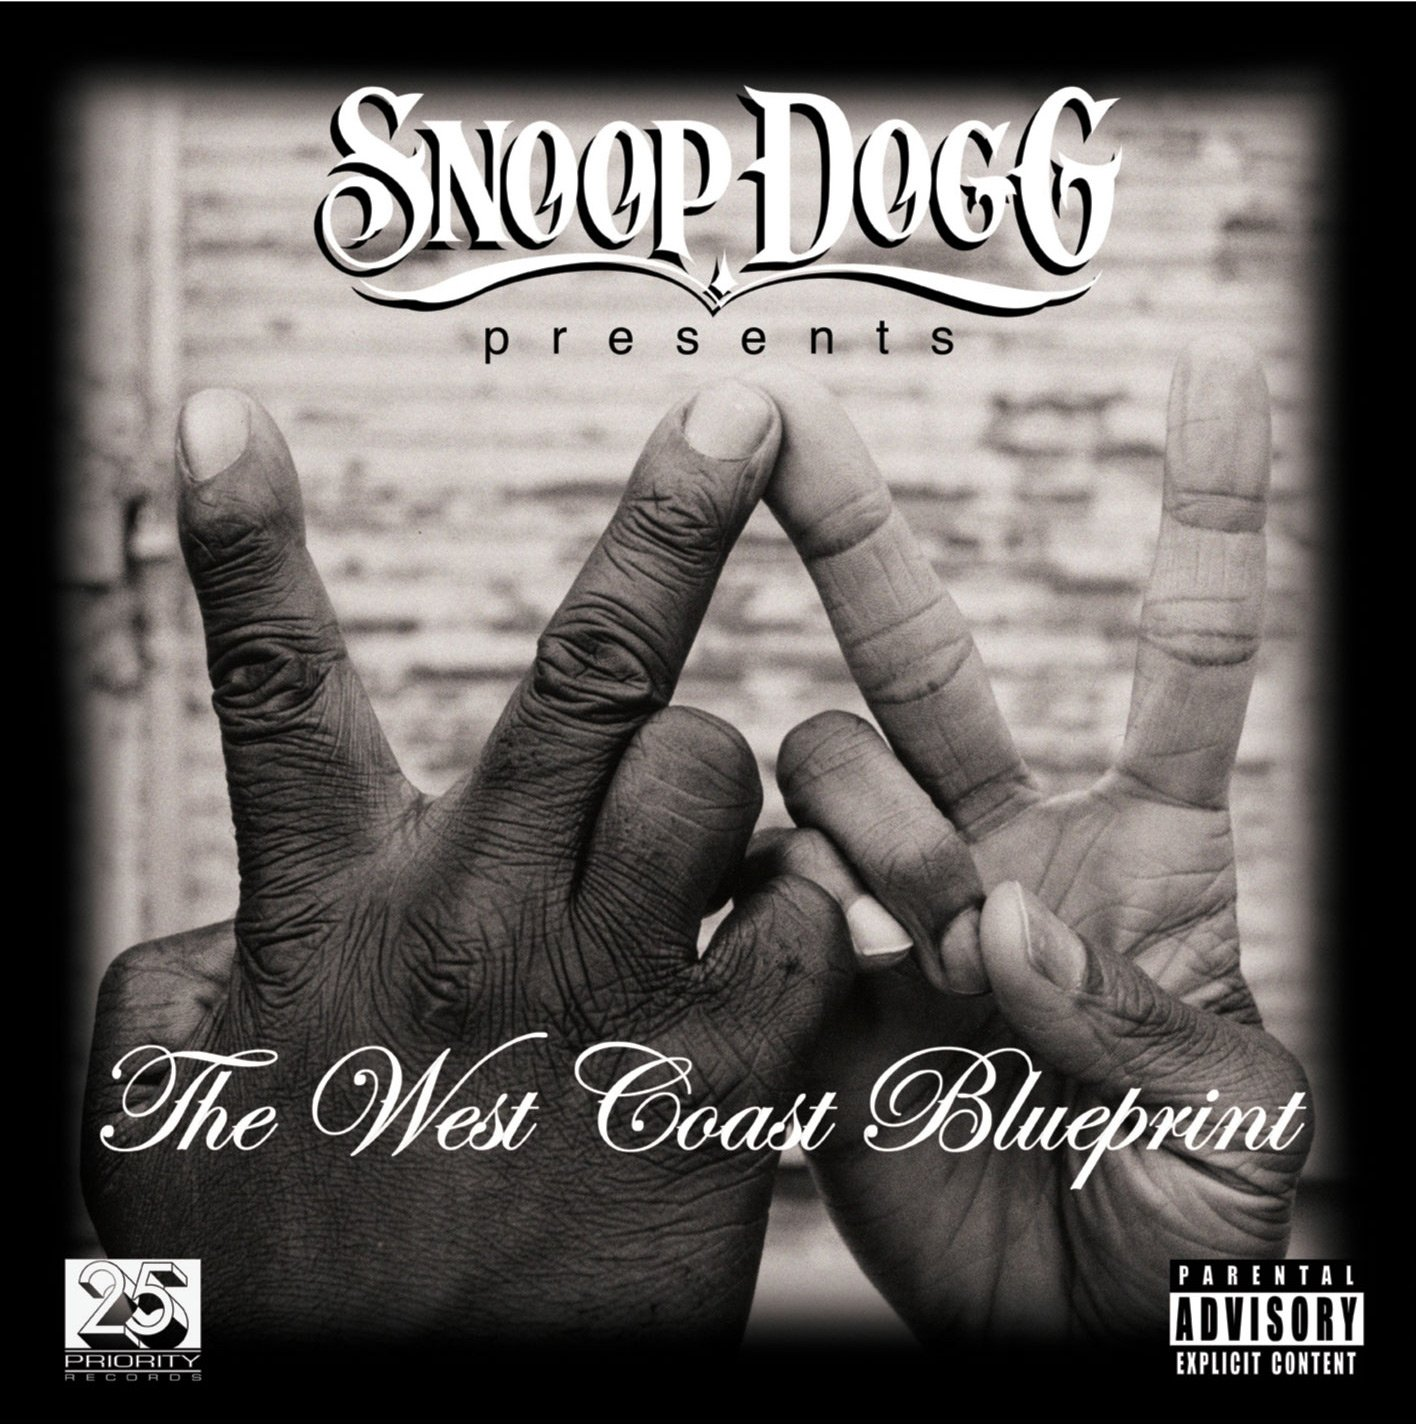 Snoop dogg various artists snoop dogg presents the west coast snoop dogg various artists snoop dogg presents the west coast blueprint amazon music malvernweather Images